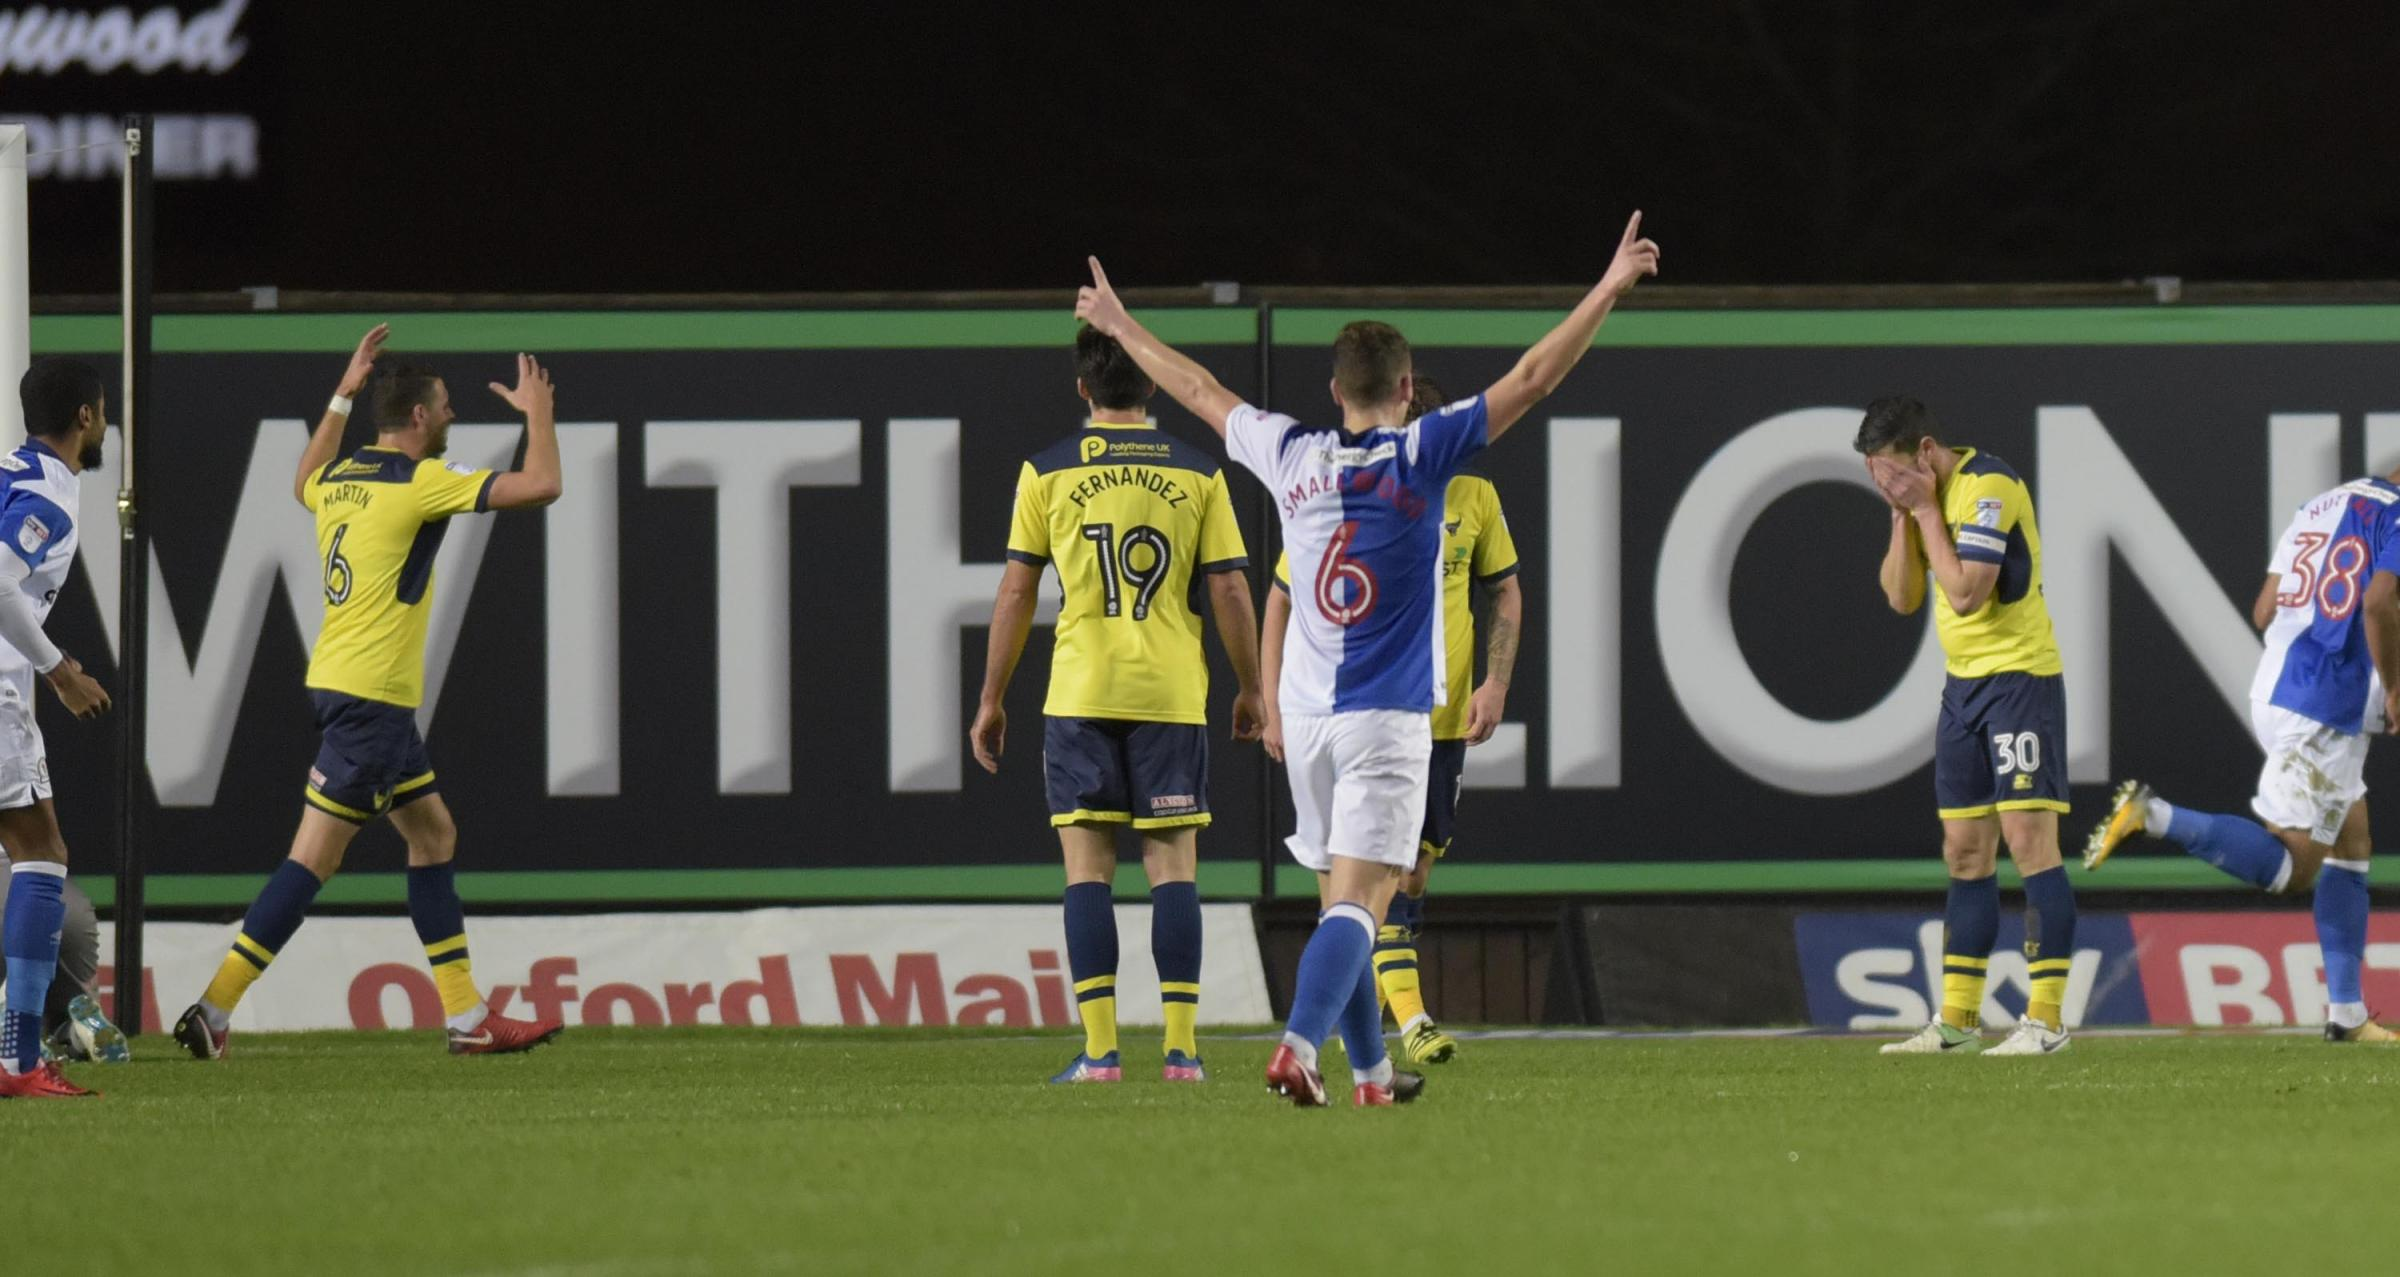 Oxford United captain John Mousinho (right) and centre back partner Aaron Martin (left) show their dismay at conceding a fourth goal against Blackburn Rovers last night. Picture: David Fleming